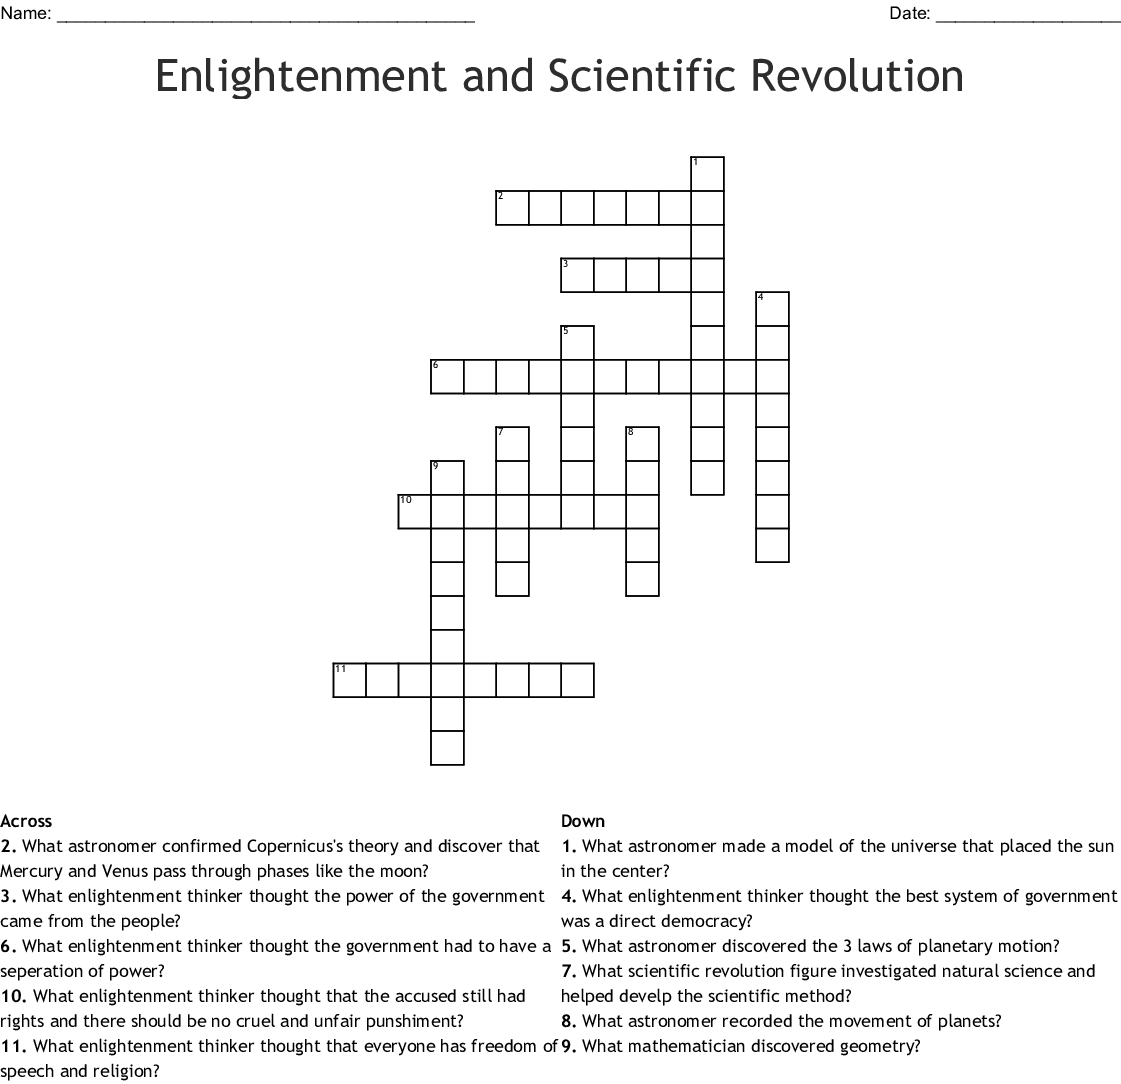 Enlightenment And Scientific Revolution Crossword Wordmint